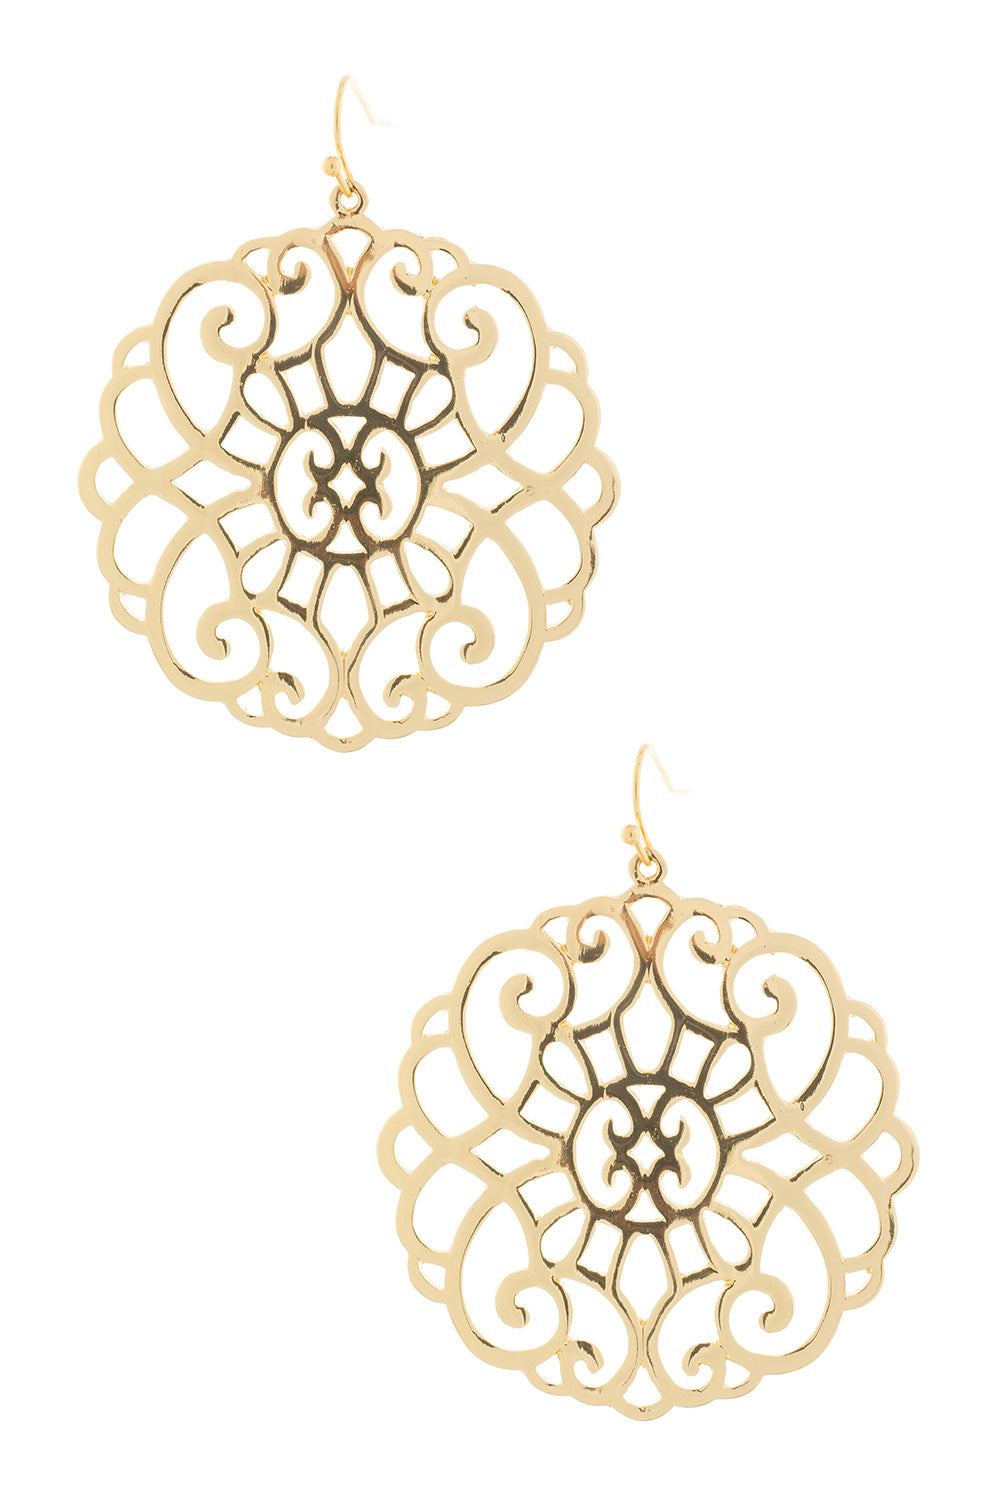 Type 1 Gold Lace Earrings